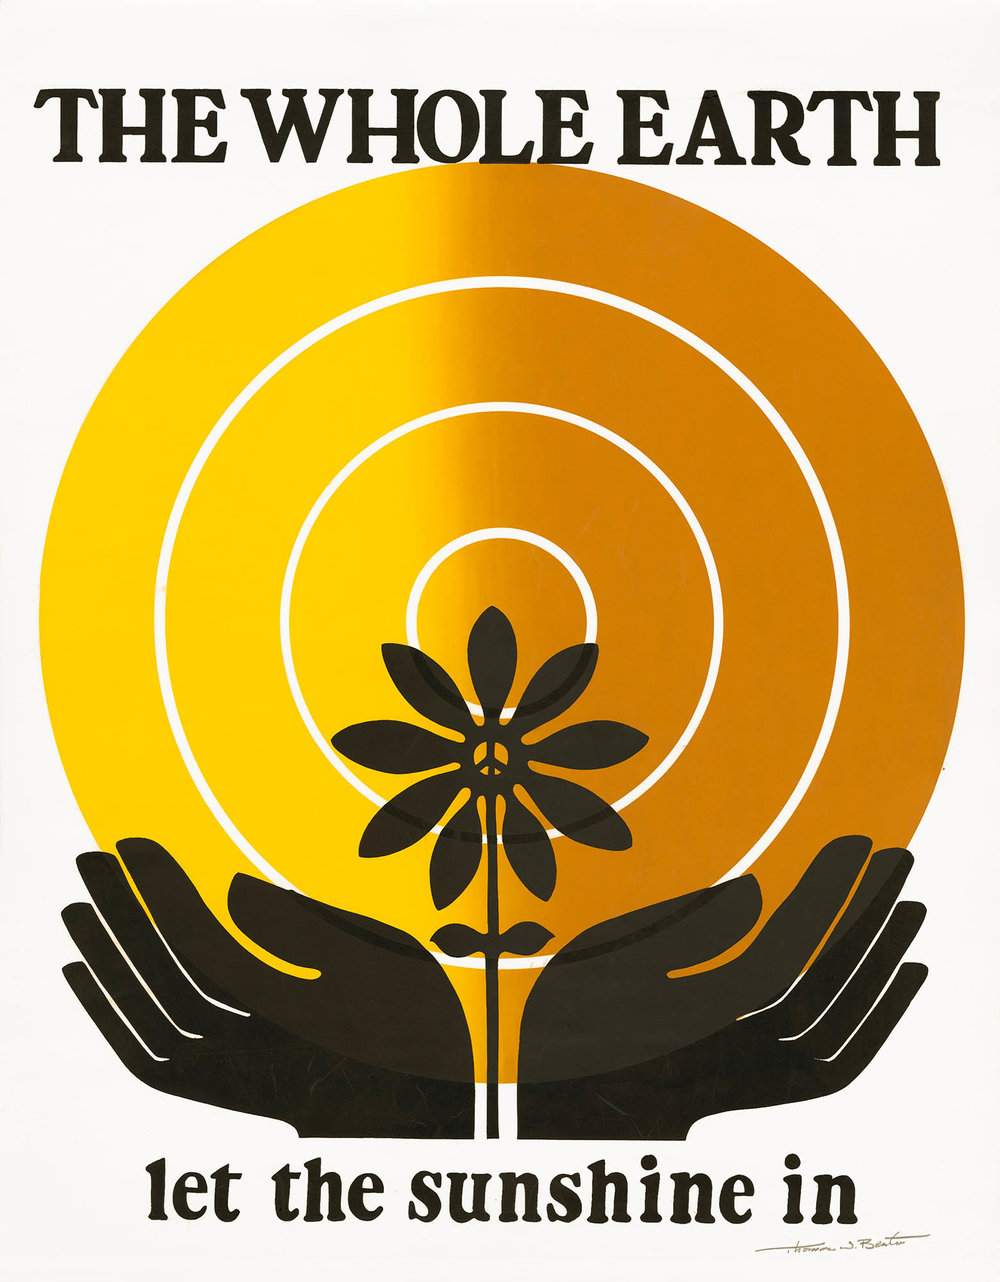 Whole Earth (1).jpg